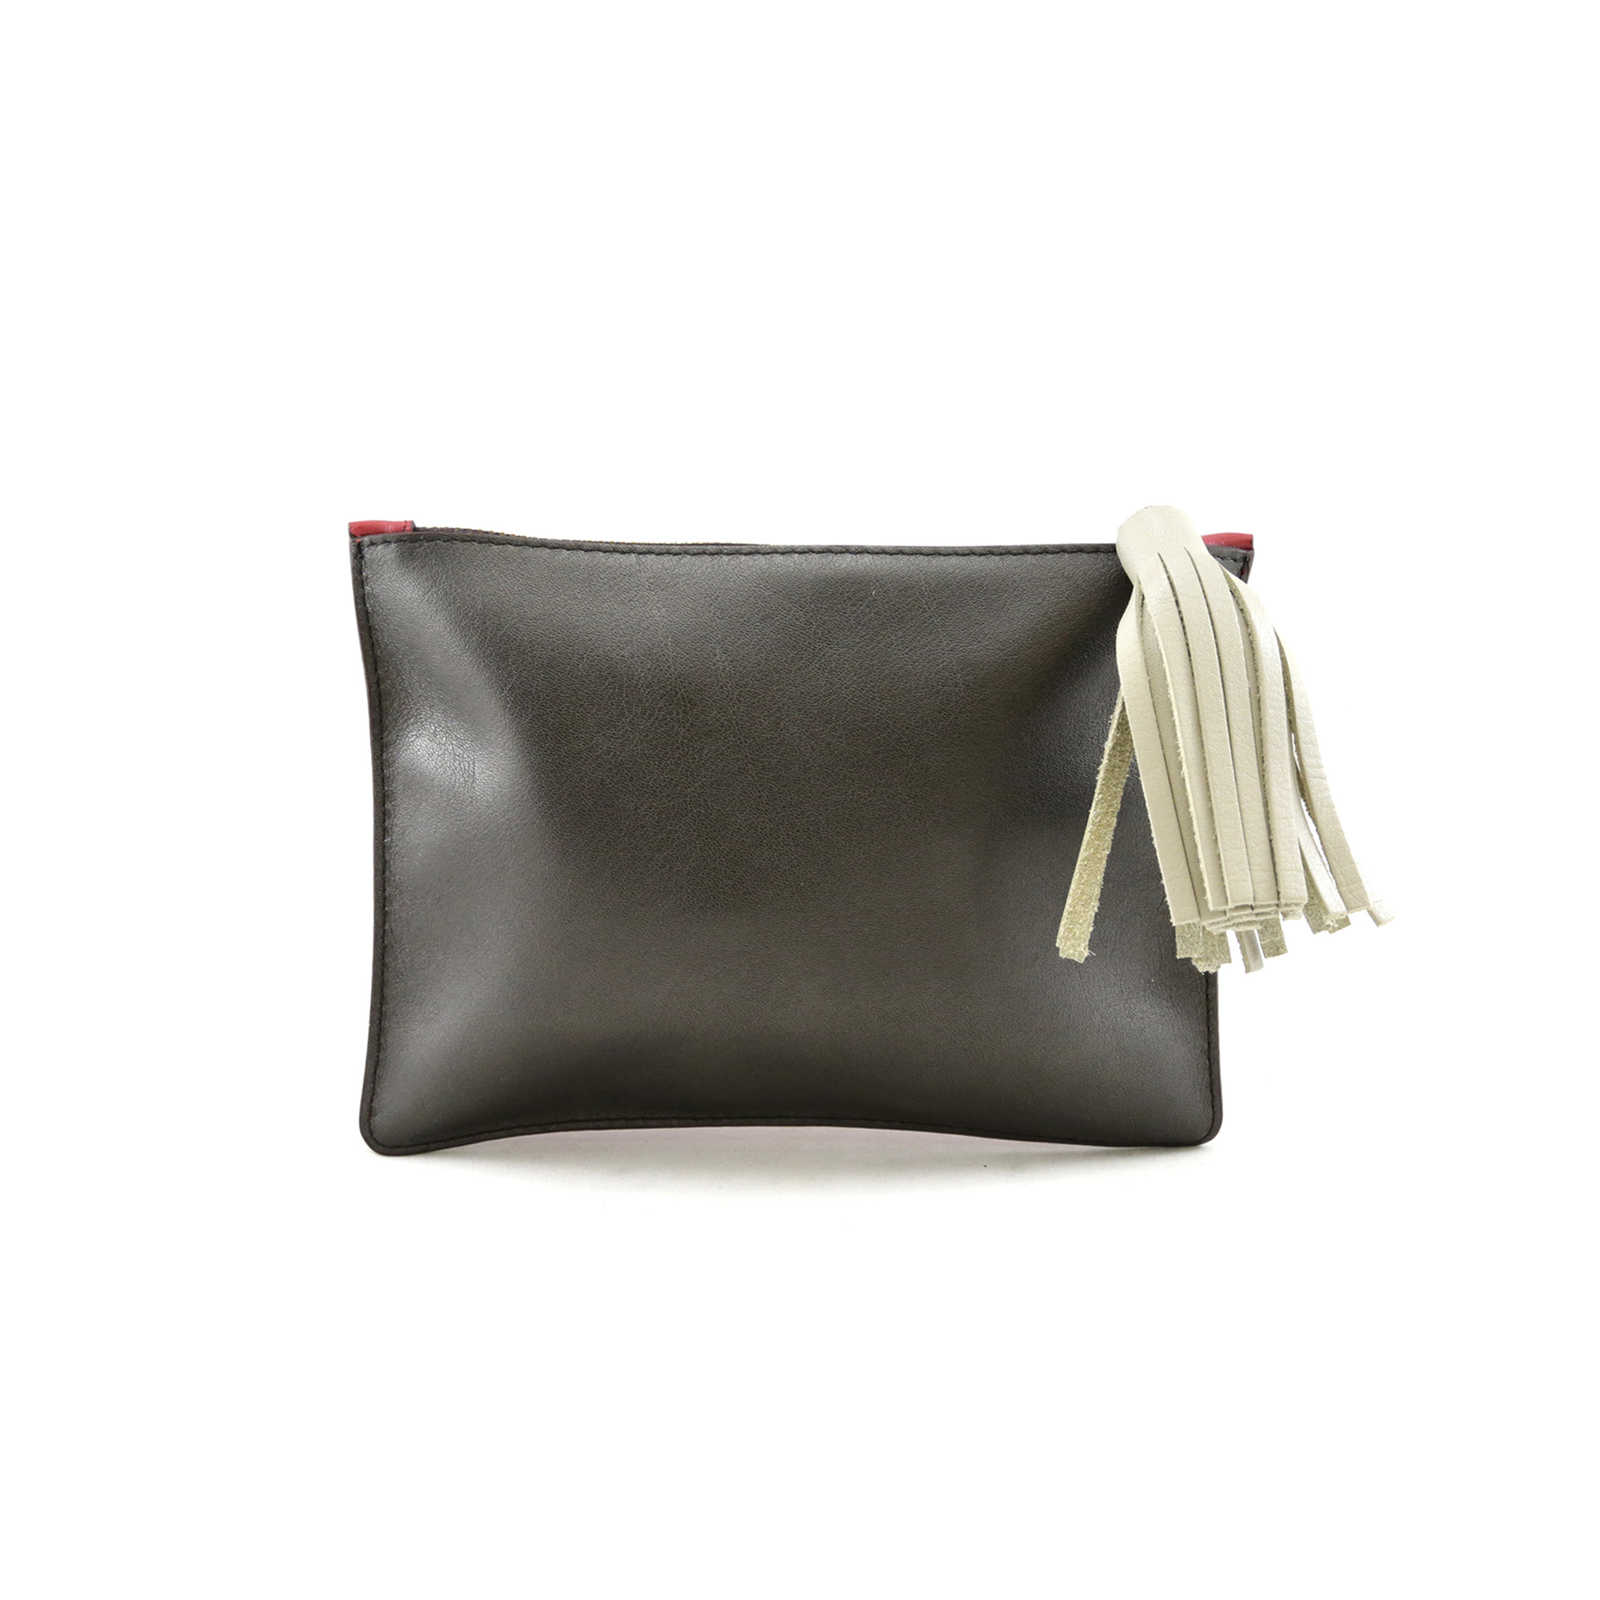 4b7bcda08 ... Authentic Second Hand CH Carolina Herrera Tassel Pouch (PSS-025-00013)  ...